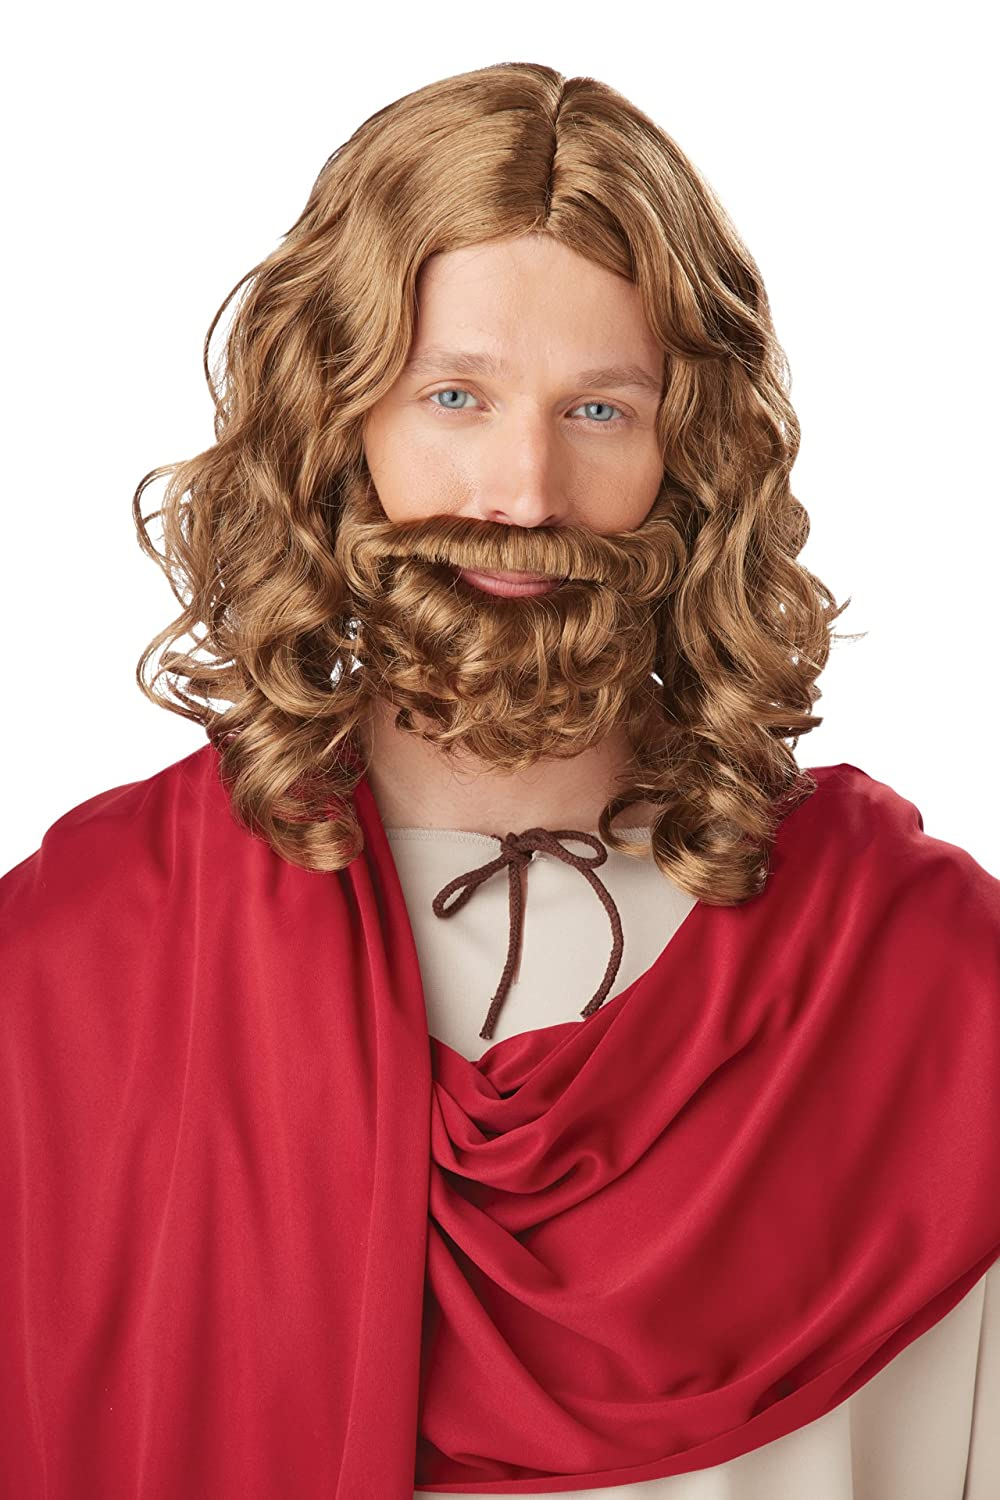 Amazon.com California Costumes Menu0027s Jesus Wig and Beard Adult Brown One Size Clothing  sc 1 st  Amazon.com & Amazon.com: California Costumes Menu0027s Jesus Wig and Beard Adult ...